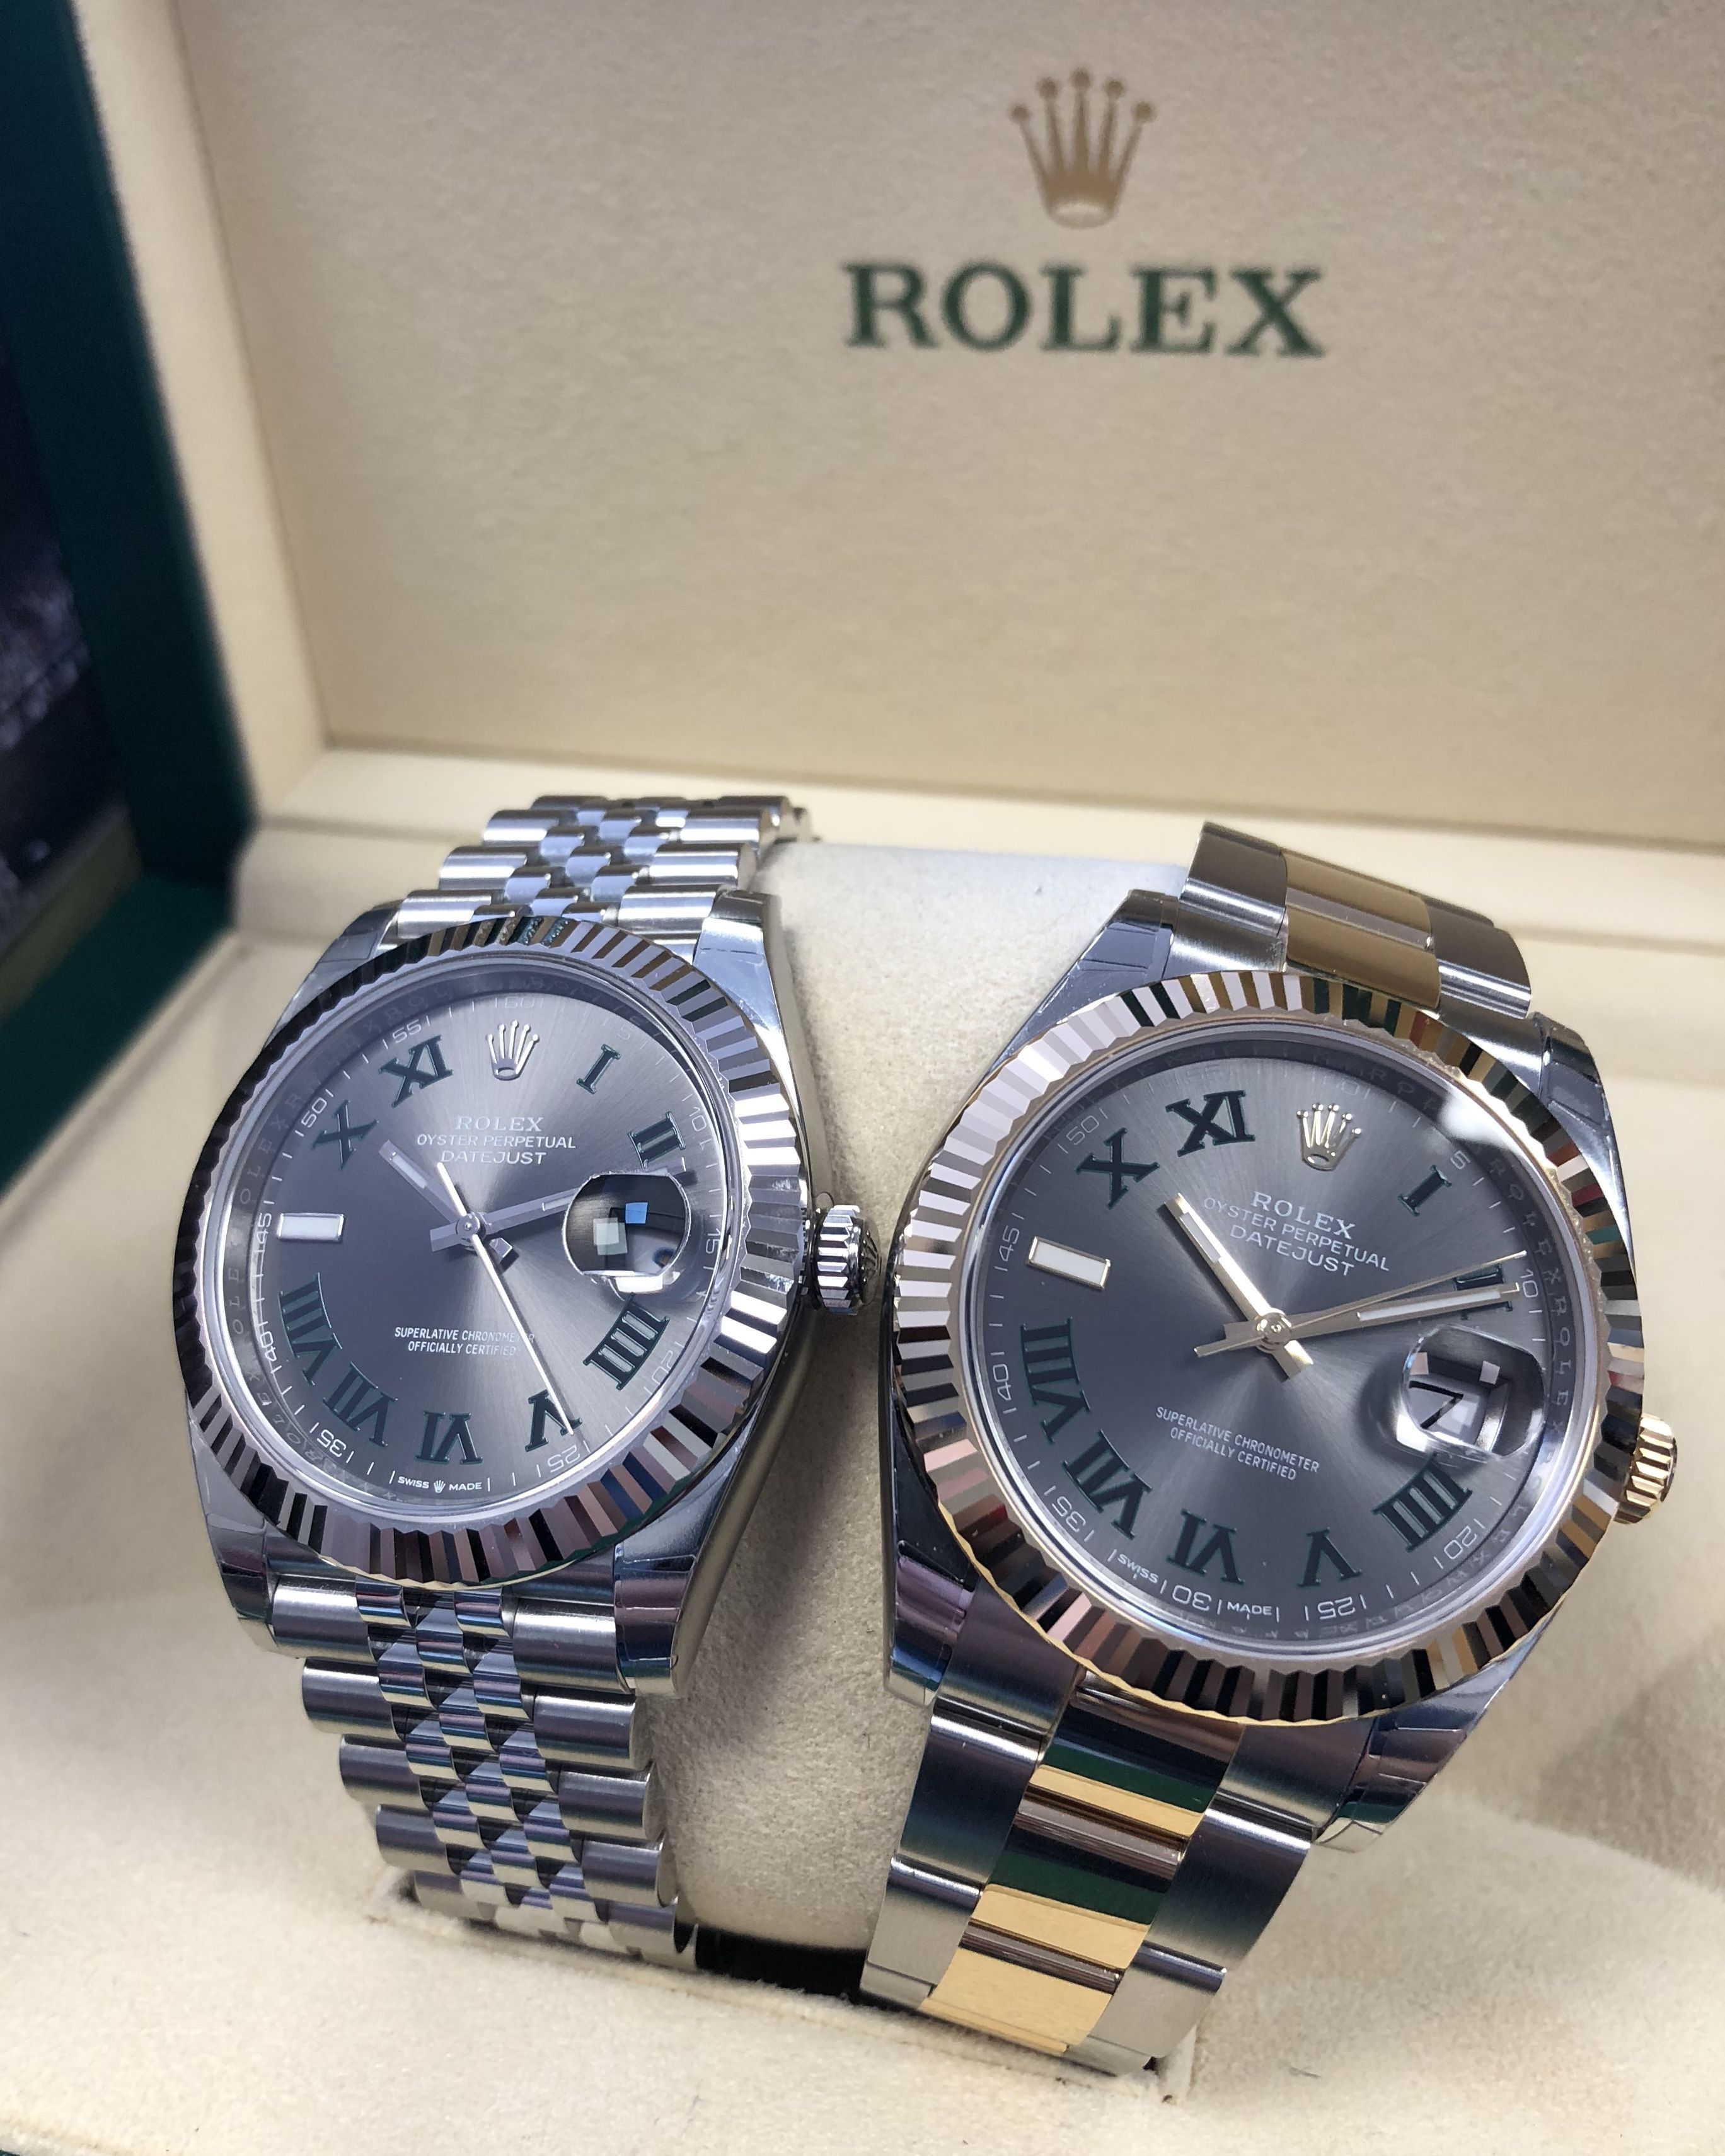 bd95a4cb8cf The best of the Rolex Datejust II collection? Now discontinued, last few  available   Rolex   Rolex, Rolex datejust und Rolex datejust ii